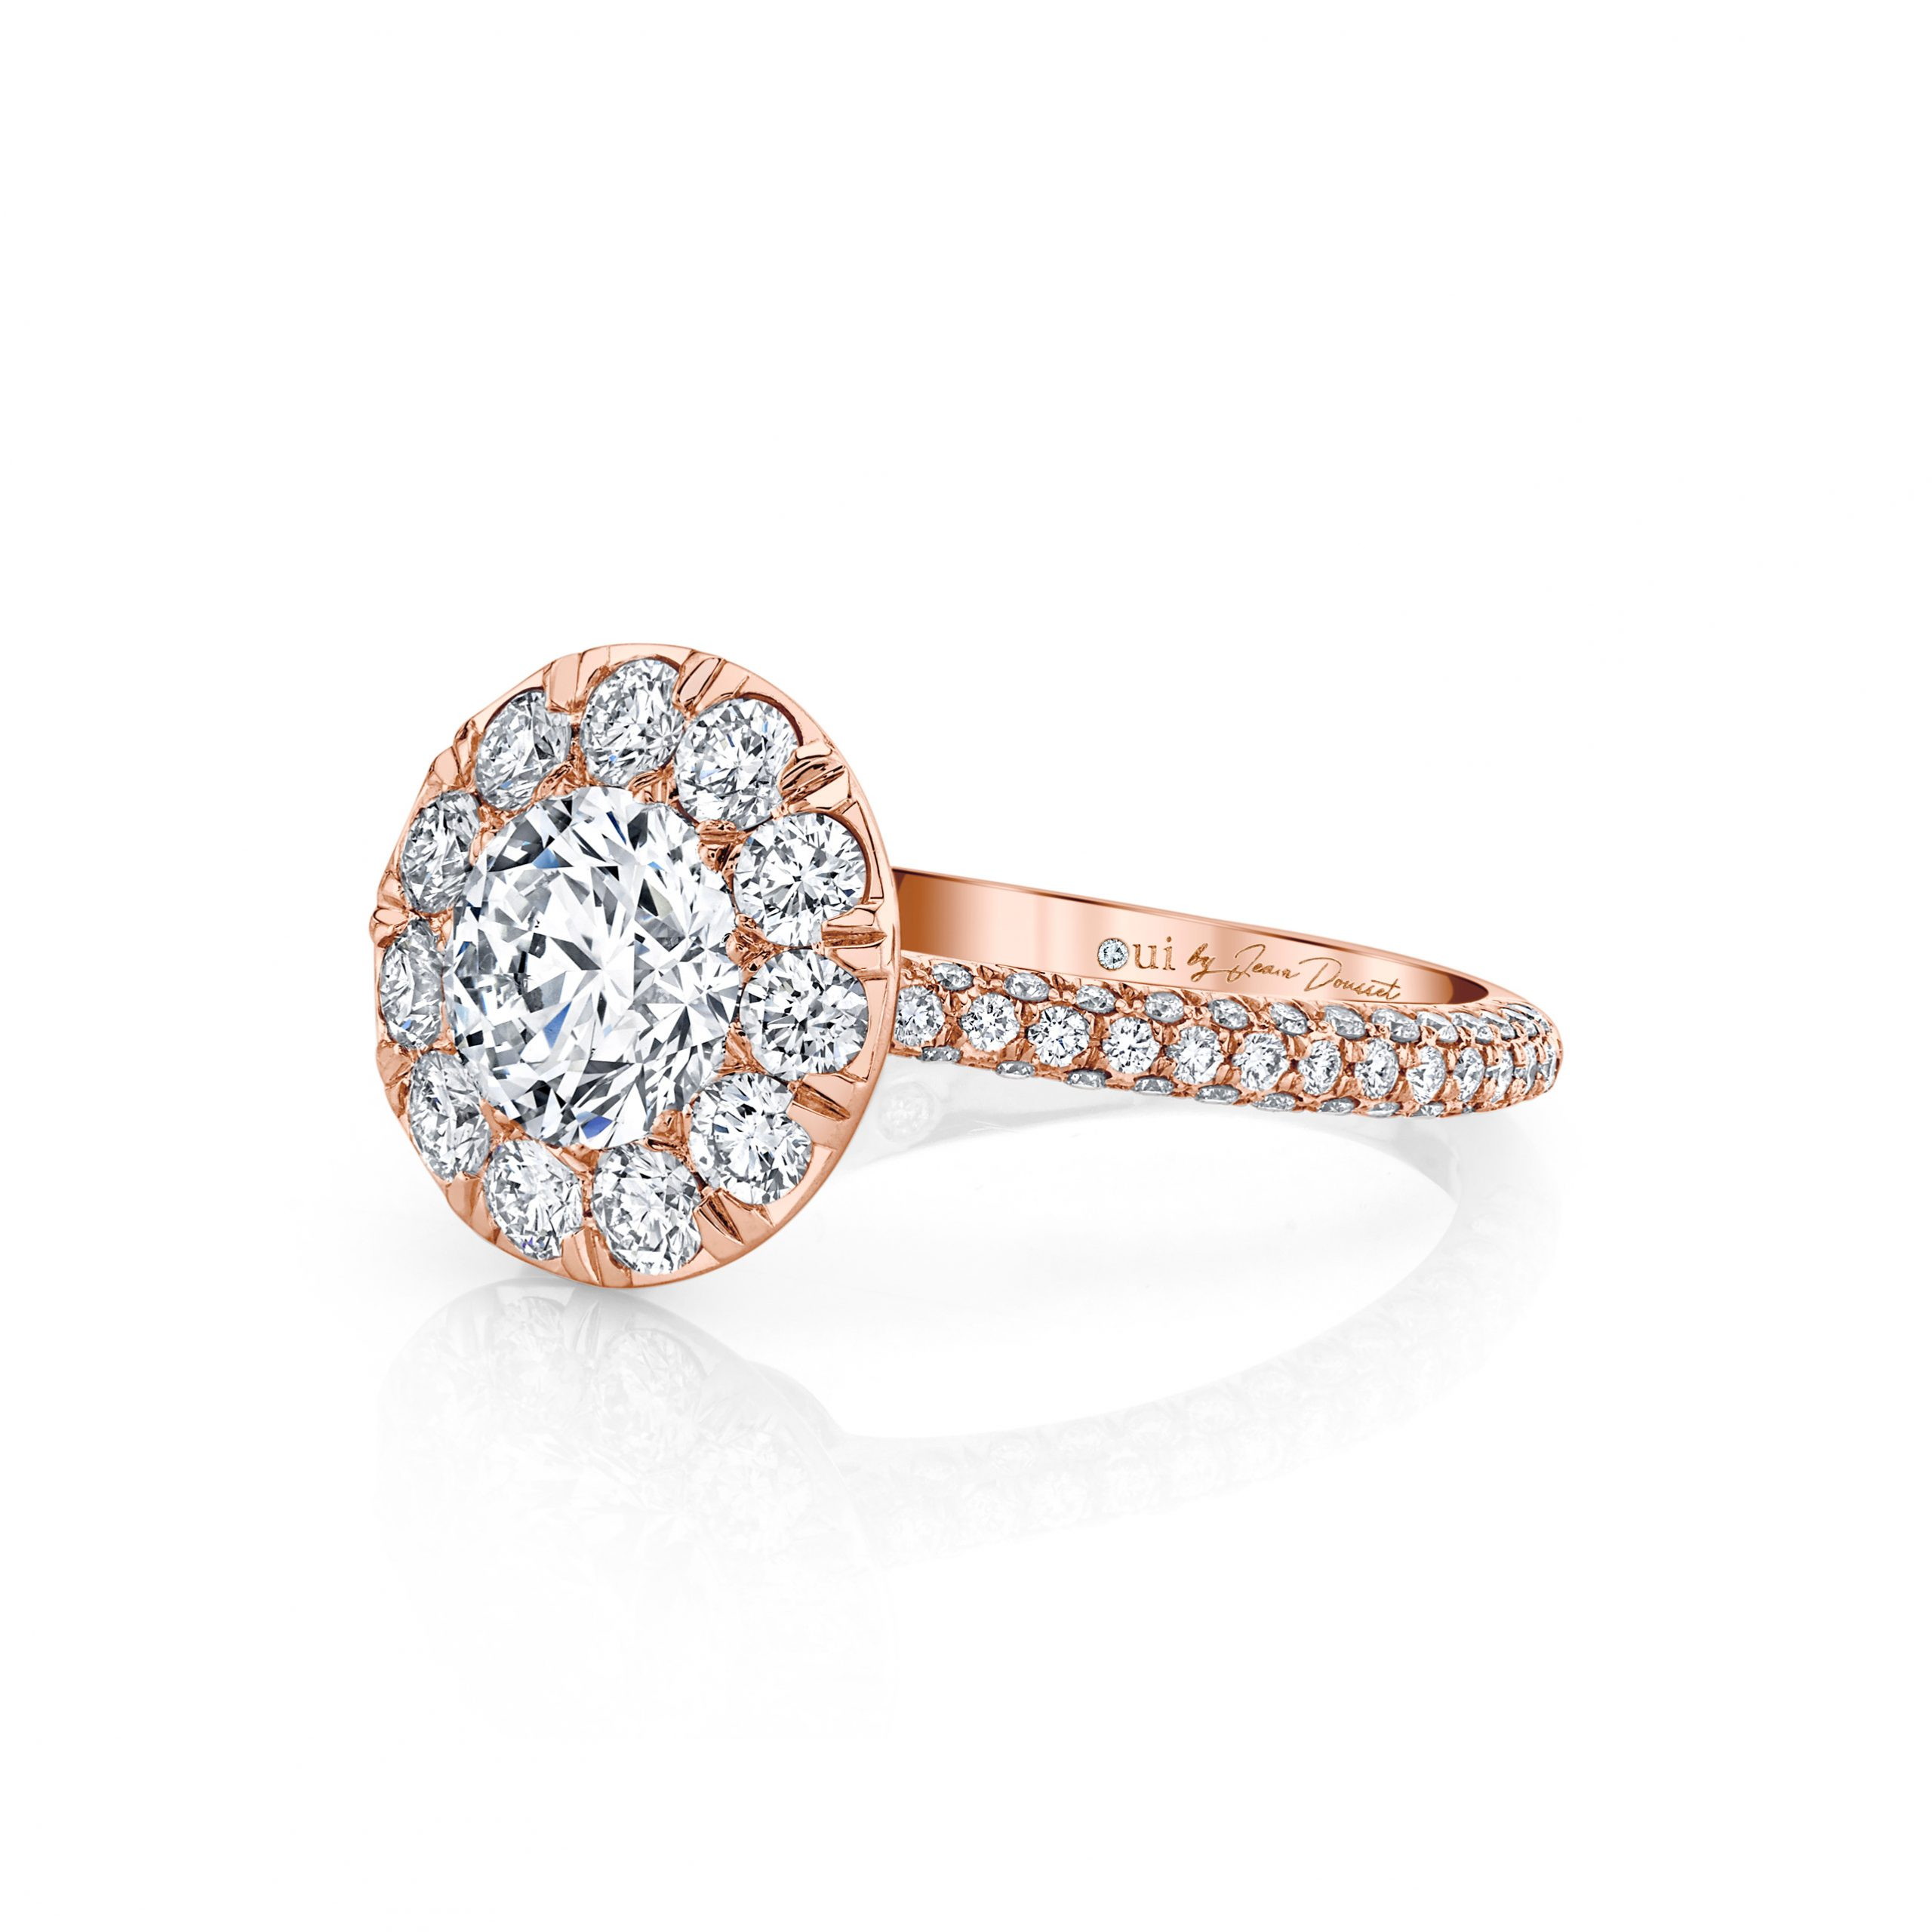 Jacqueline Round Brilliant Seamless Solitaire® Engagement Ring 18k Rose Gold Side View by Oui by Jean Dousset